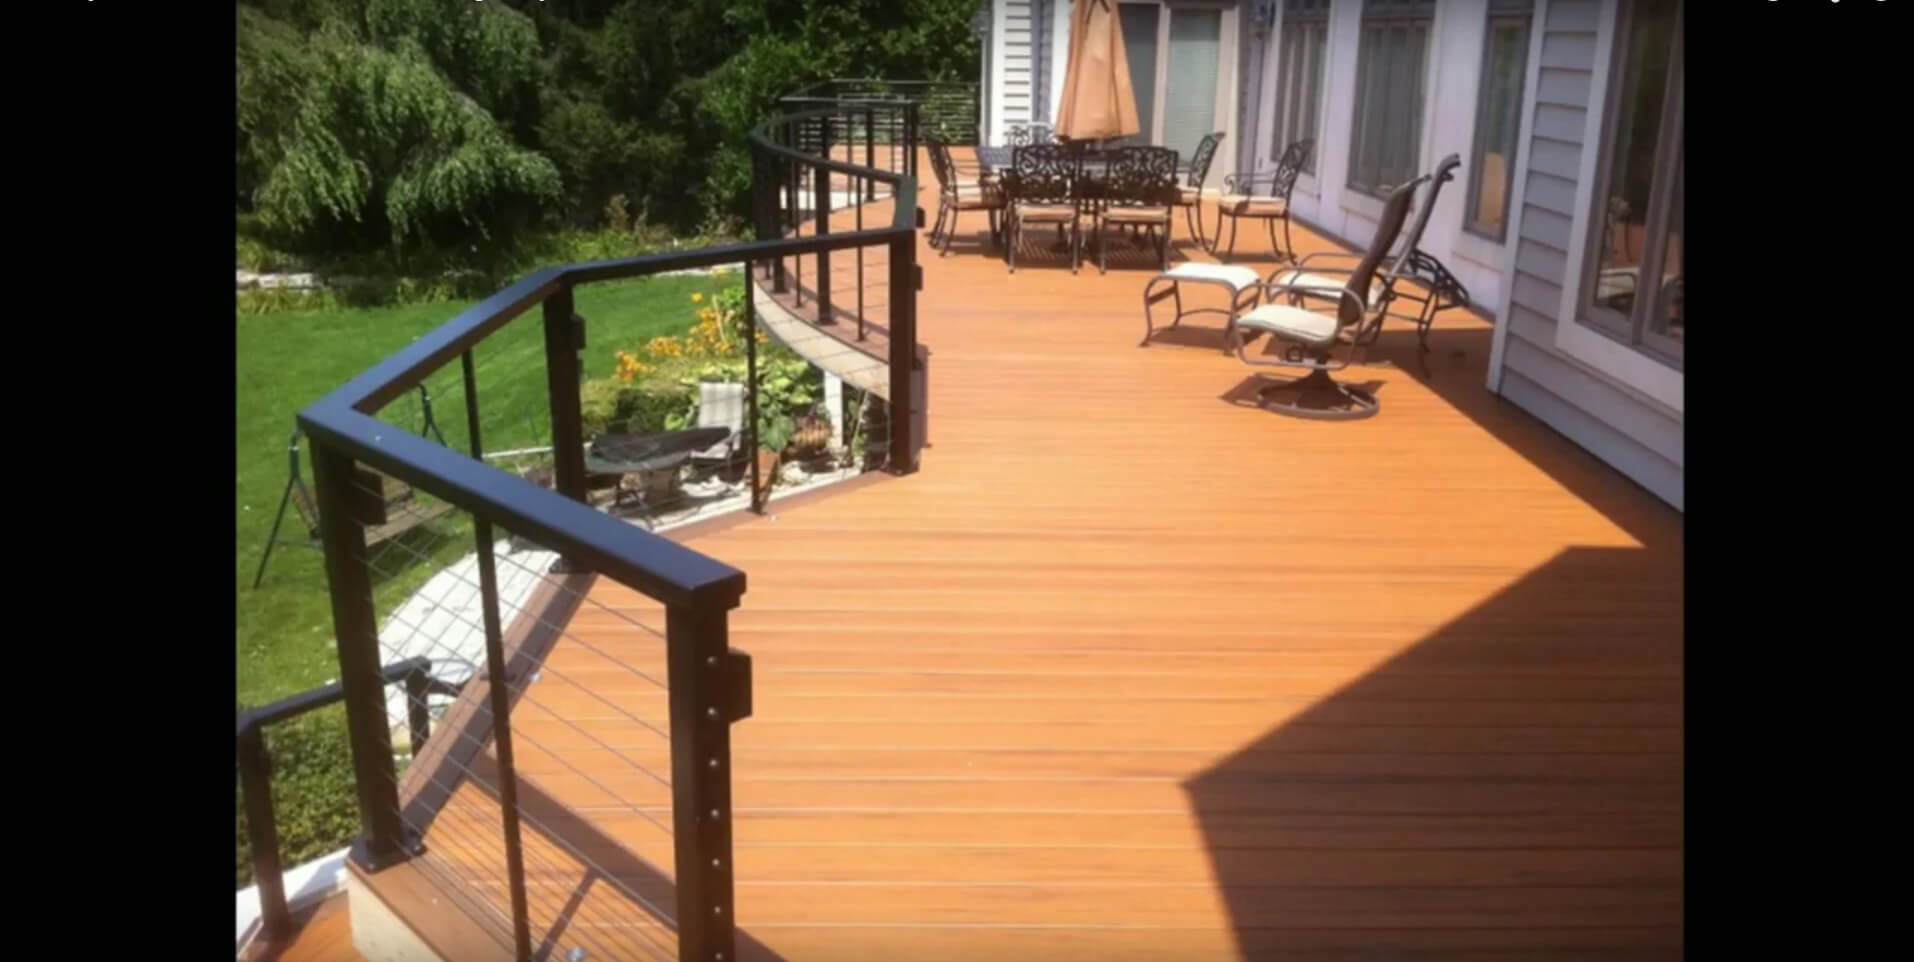 Custom backyard deck with seating area and railing